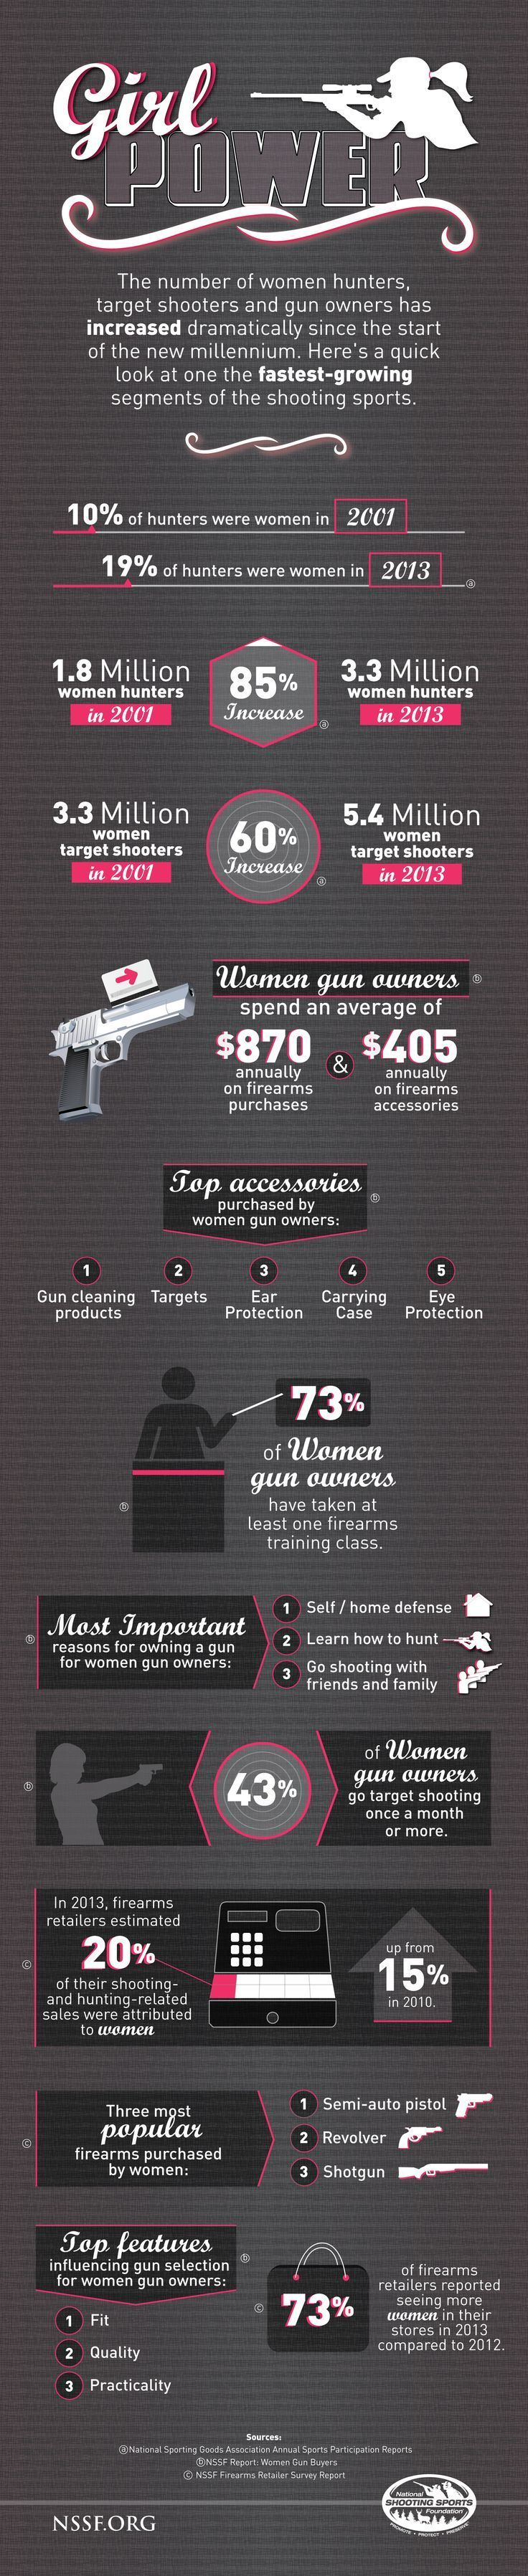 NSSF Infographic: Girl Power | Women And Guns | Hunting, Self Defense And Firearms Facts For Women by Gun Carrier at http://guncarrier.com/nssf-infographic-girl-power-women-guns/